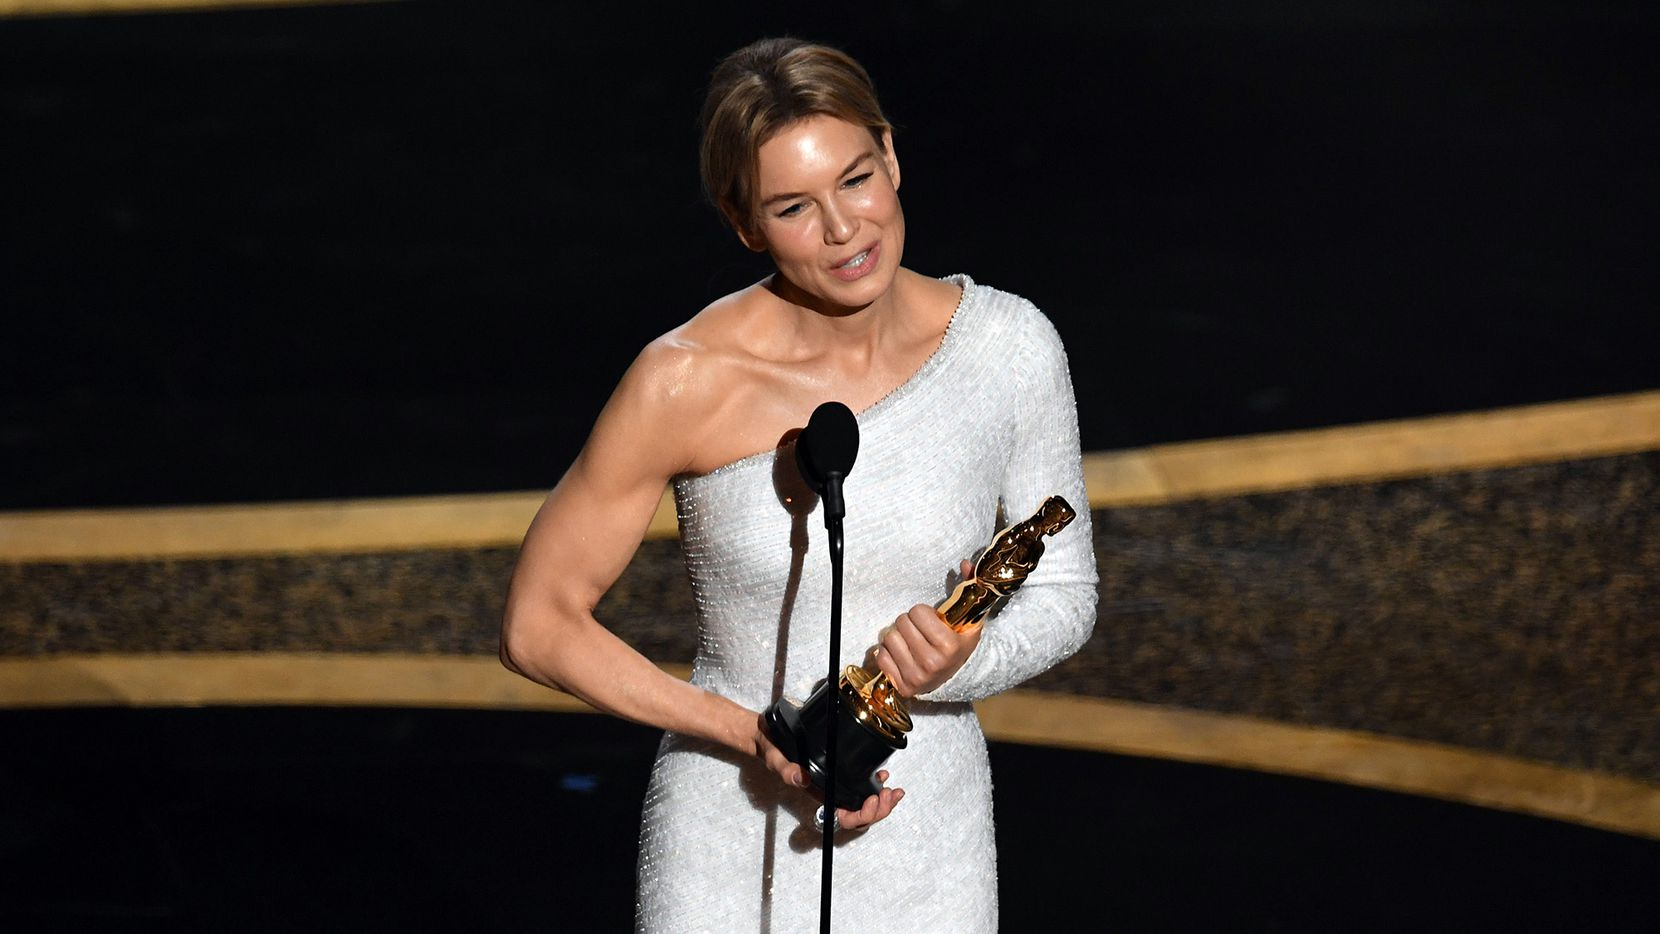 """Renée Zellweger accepts the Actress in a Leading Role award for """"Judy"""" onstage during the 92nd Annual Academy Awards at Dolby Theatre on Sunday, Feb. 9, 2020 in Hollywood, Calif."""